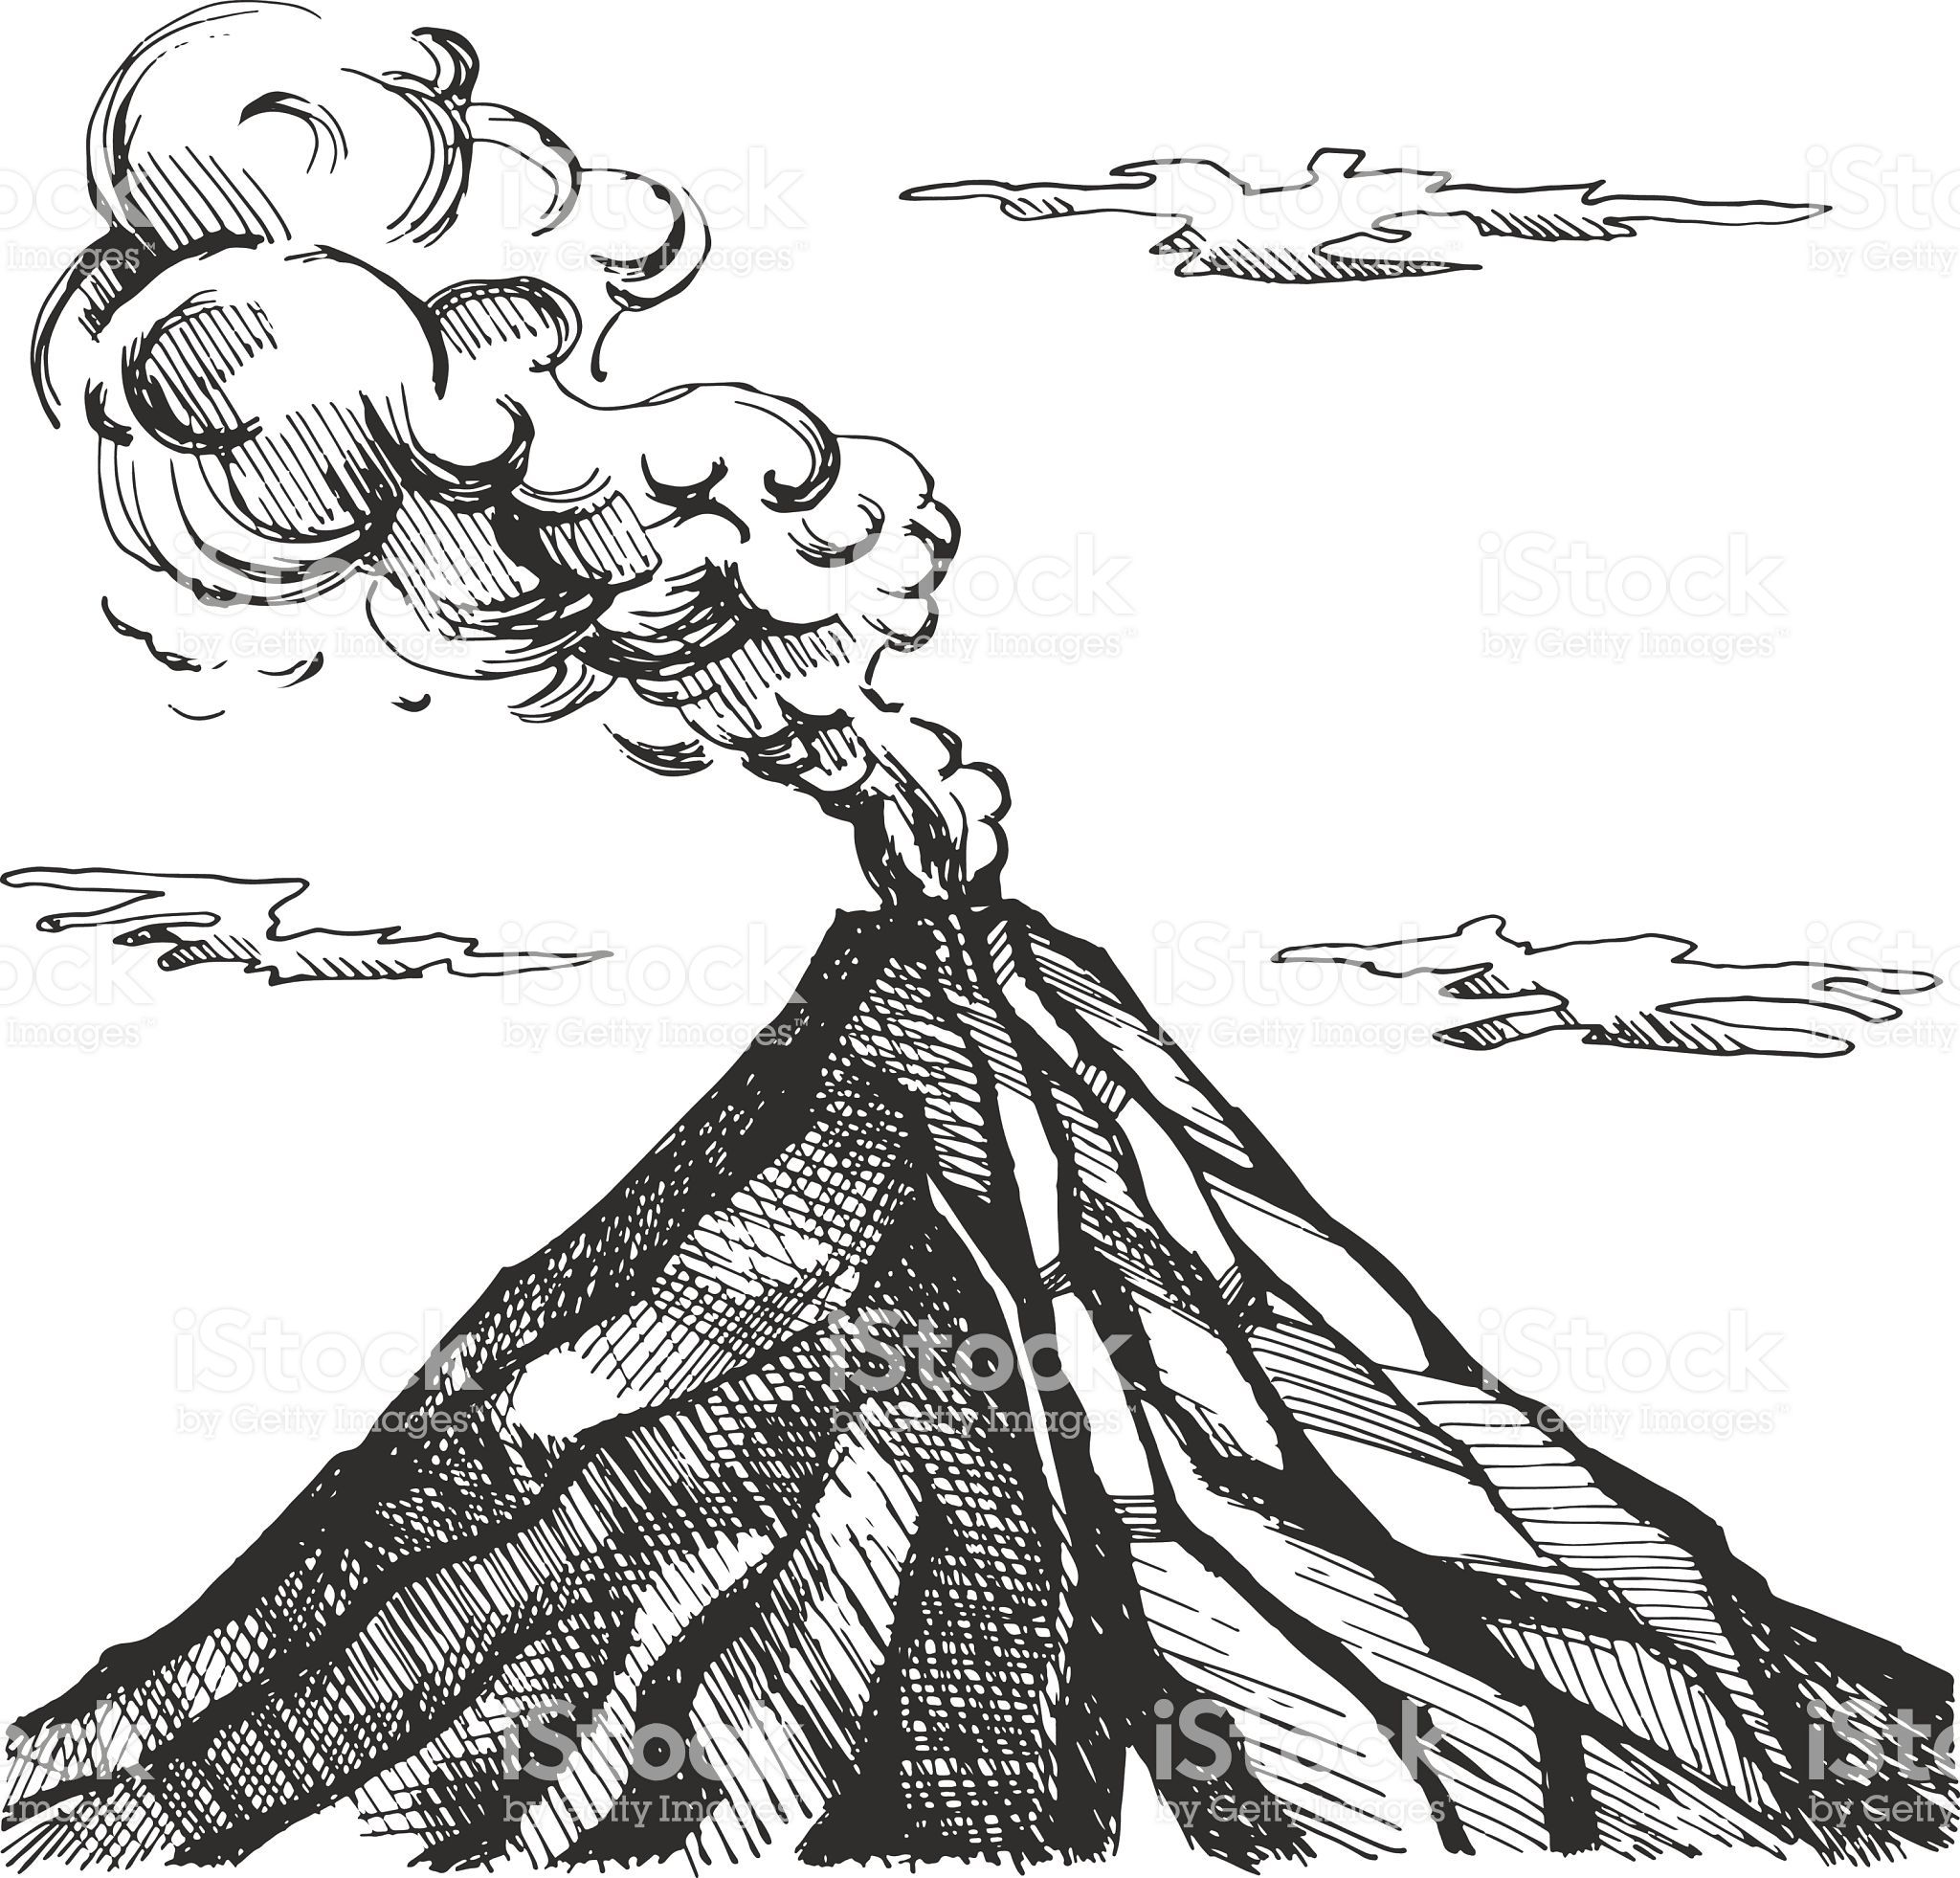 Vector sketch of the volcano royalty free vector sketch of the volcano stock vector art more images of accidents and disasters